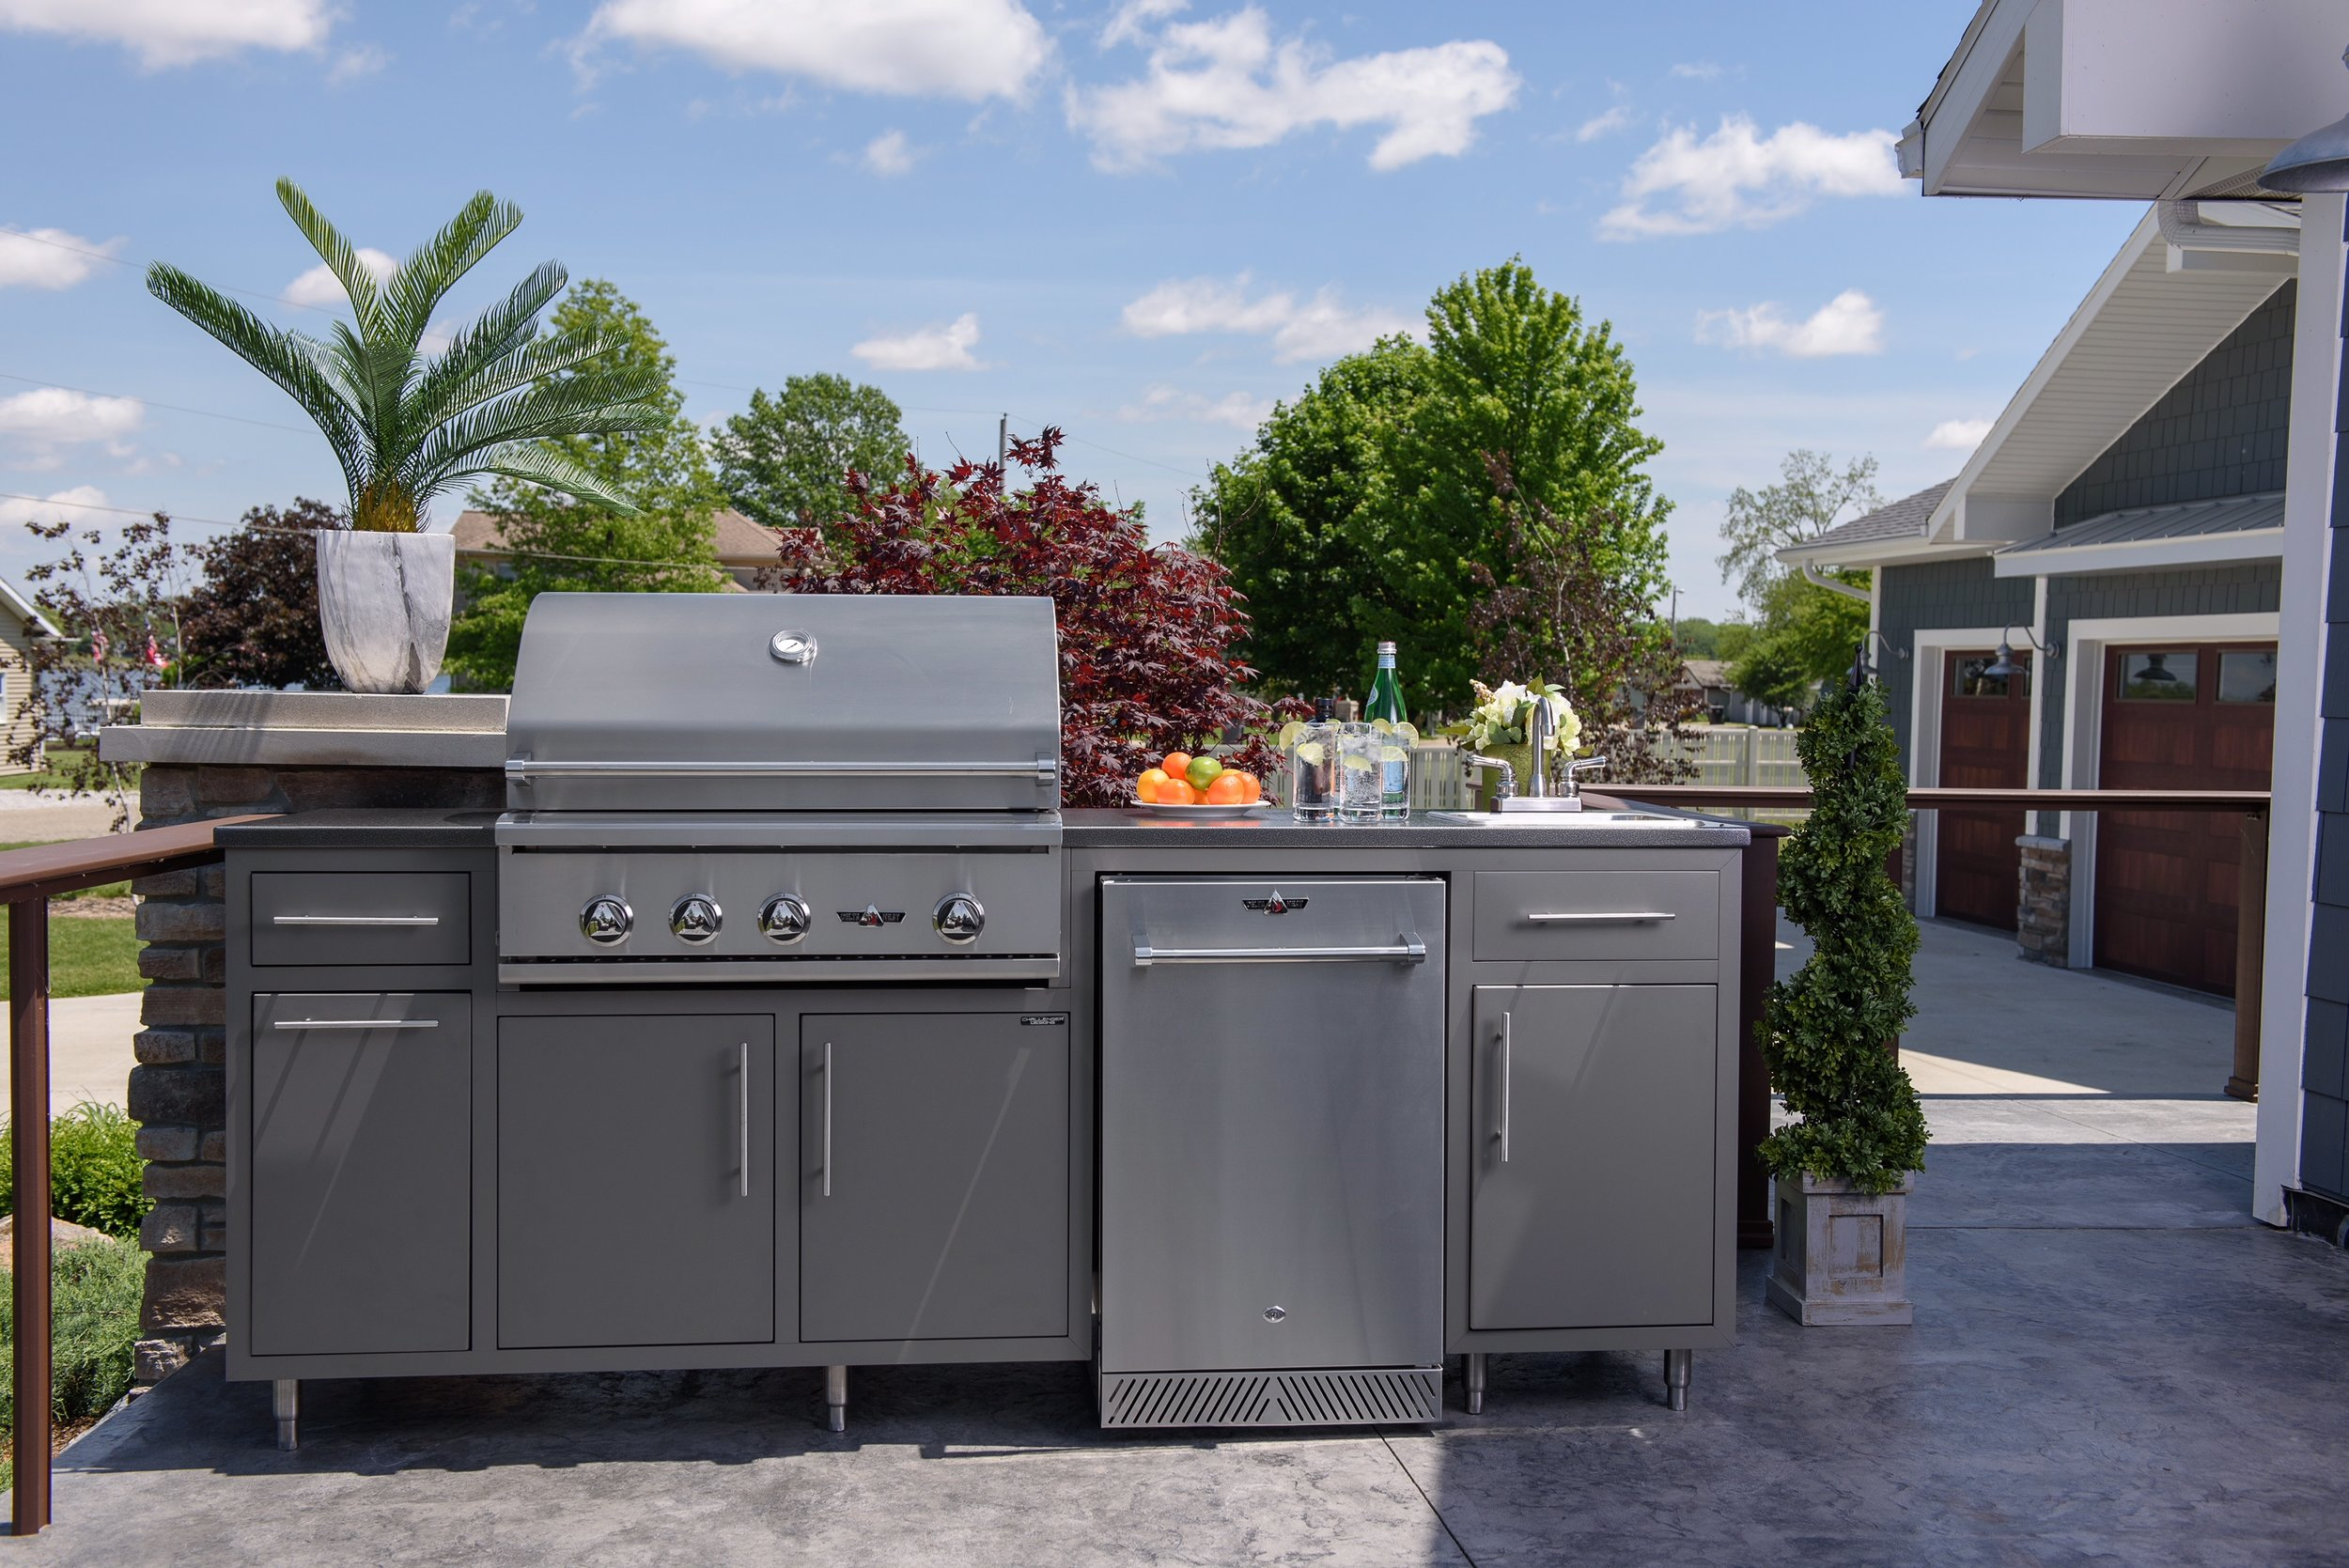 """ONLY $6,396!  Model 17COGI-89 is 89"""" wide (30"""" deep) and includes a Delta Heat 32"""" Grill (LP or NG), a 20"""" Delta Heat outdoor refrigerator, a 15"""" Sink with On-Demand Water System (5-gal fresh water tank and 5-gal grey water tank!), a 20"""" Trash drawer (can NI), two single drawers, a single door cabinet, and double door cabinet.  (With Infrared Rotisserie $6,570. With Rotisserie and Sear Zone $6,686)  Color pictured is Grey Glimmer with Silver Vein counter-top. Also available (in stock) in Cappuccino with Copper Vein counter-top!"""